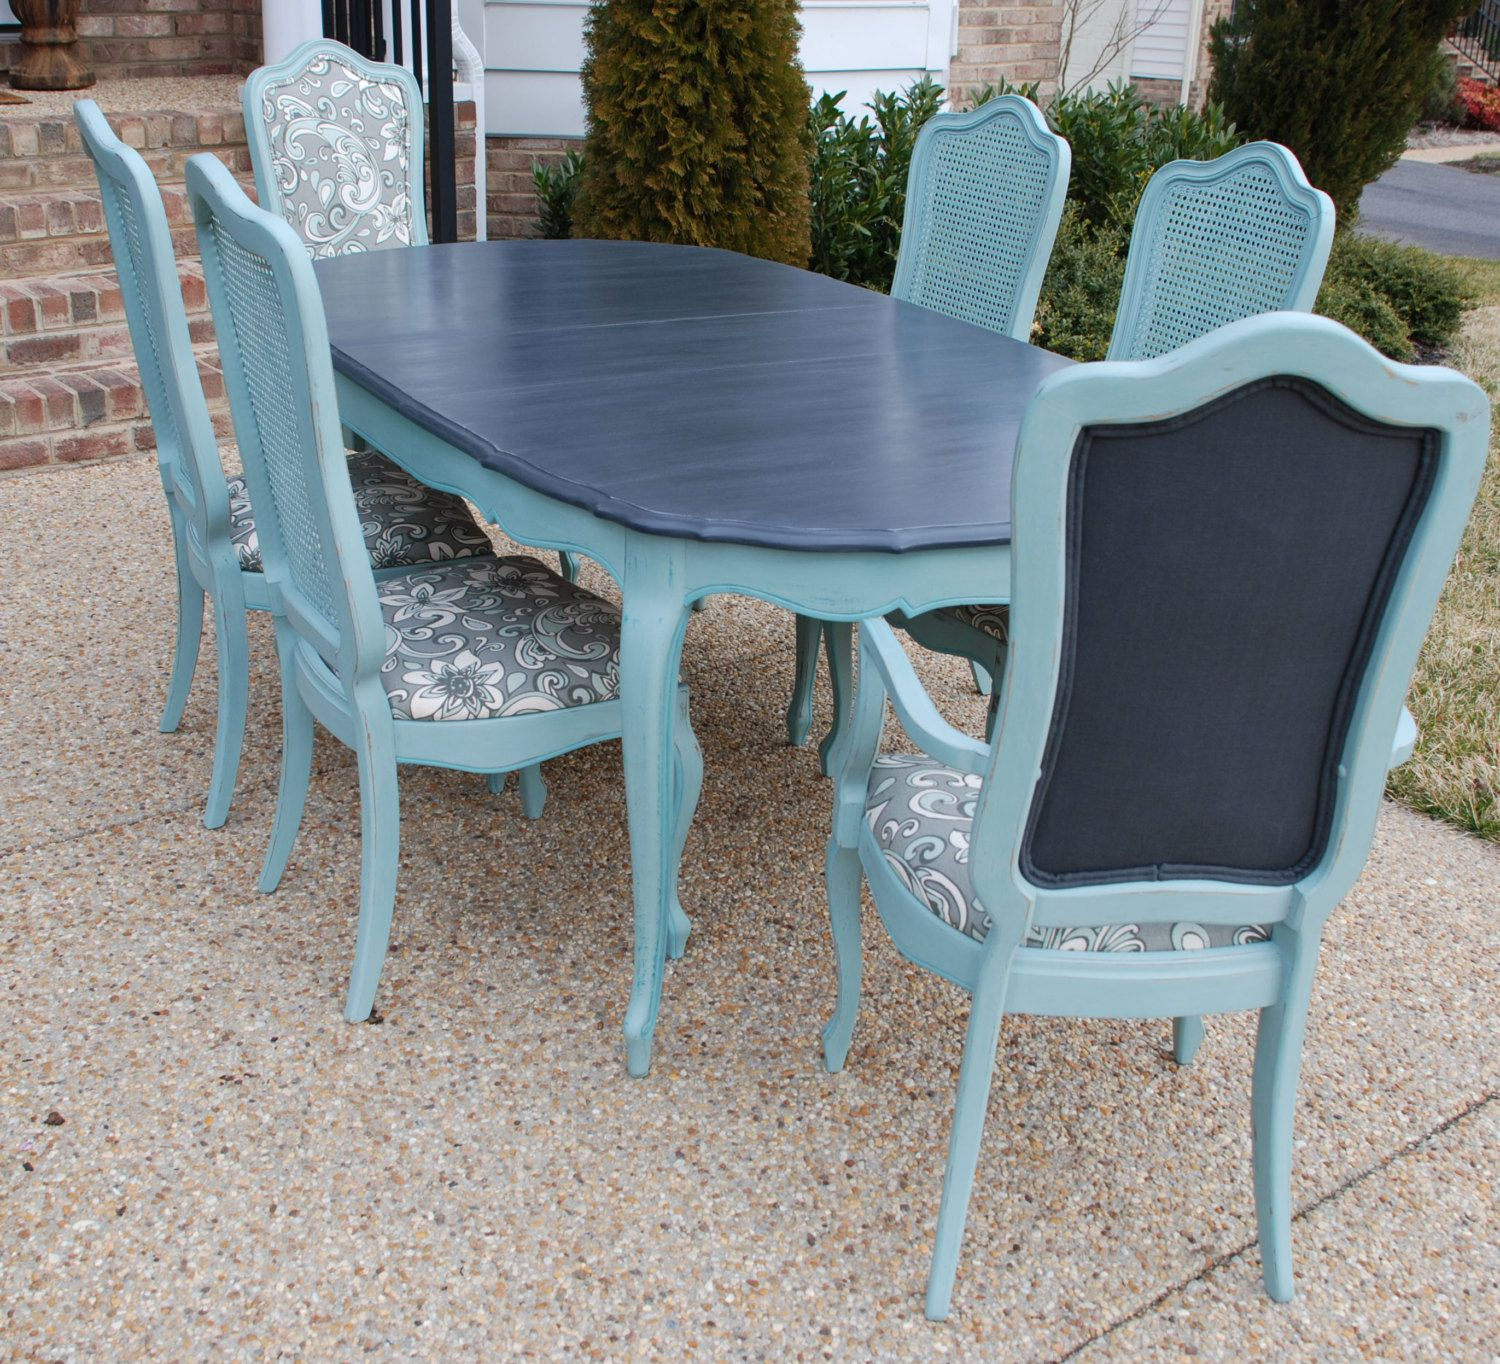 Refinished Painted Vintage 1960s Thomasville Dining Table And Chair Set 1 200 00 Via Et Painted Dining Table Dining Chair Makeover Painted Dining Room Table